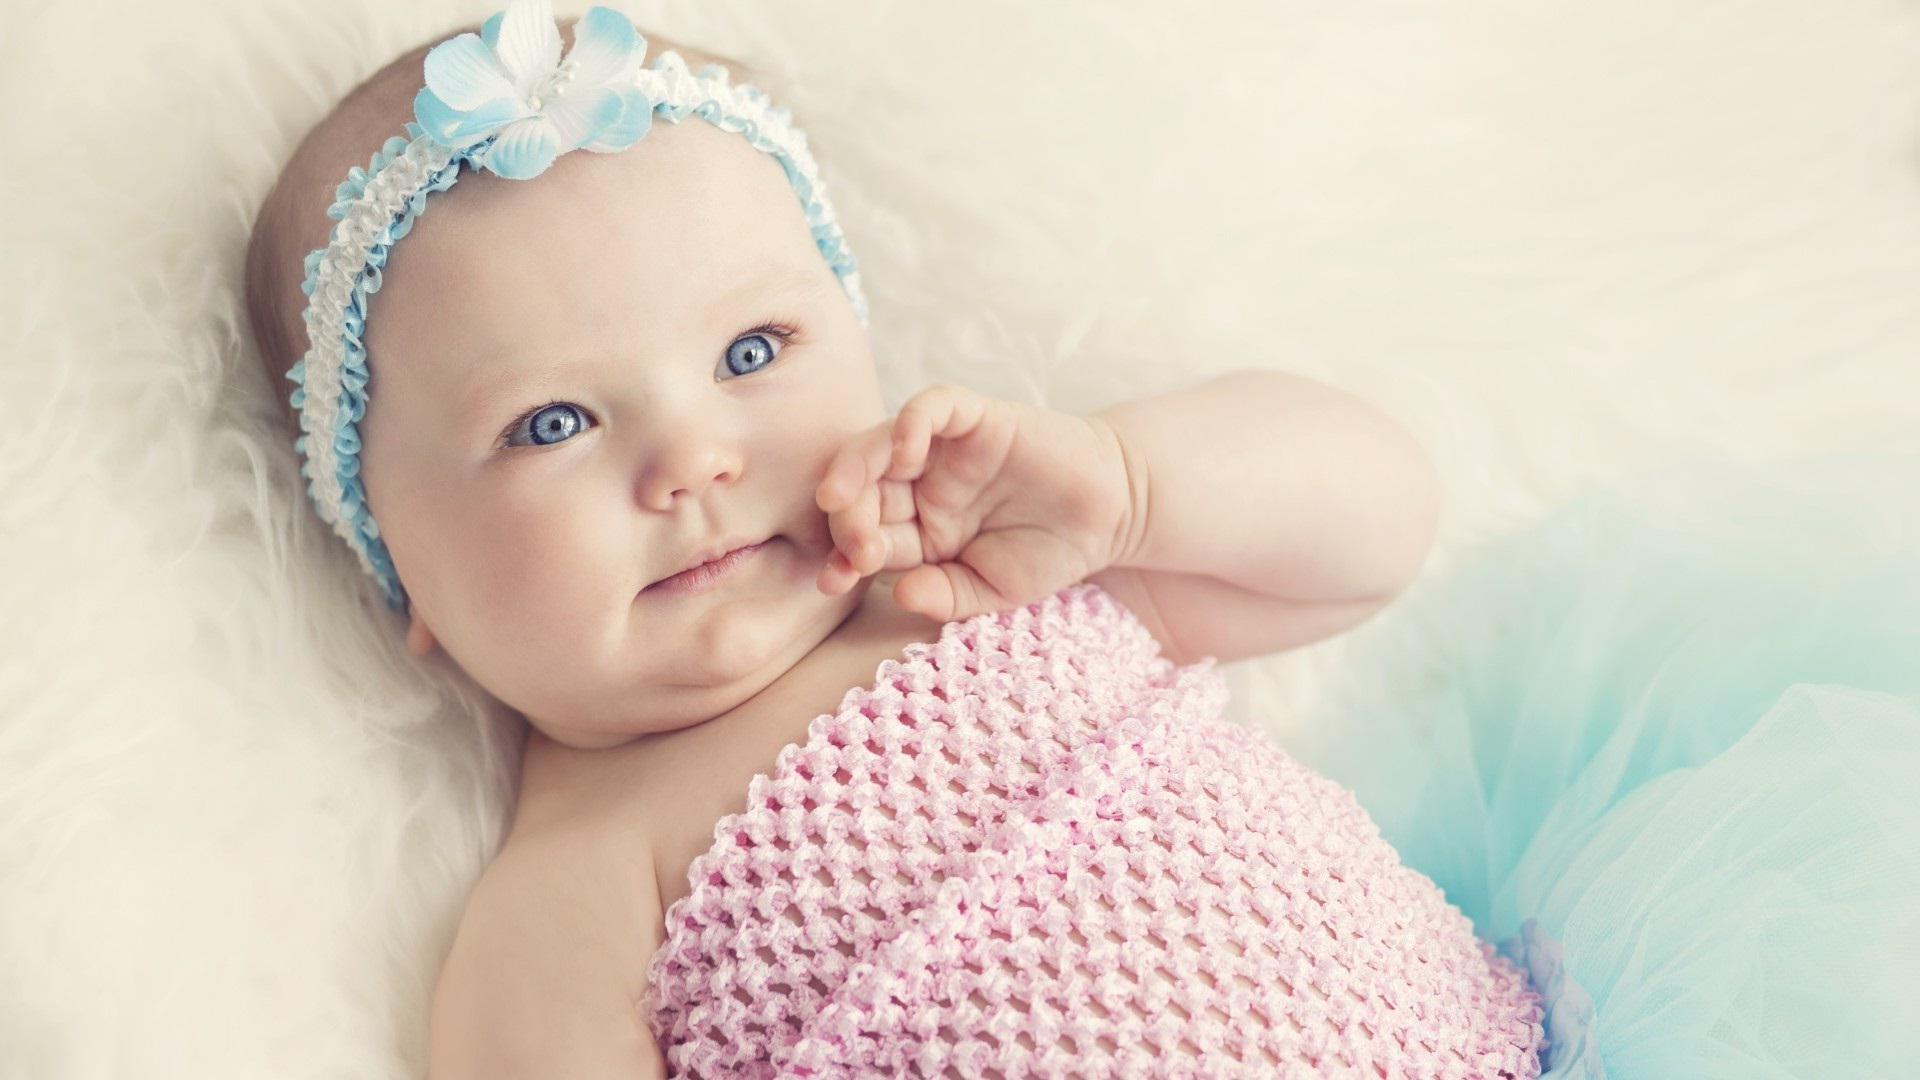 Cute Baby Wallpapers Images - Cute Babies With Blue Eyes Girls , HD Wallpaper & Backgrounds